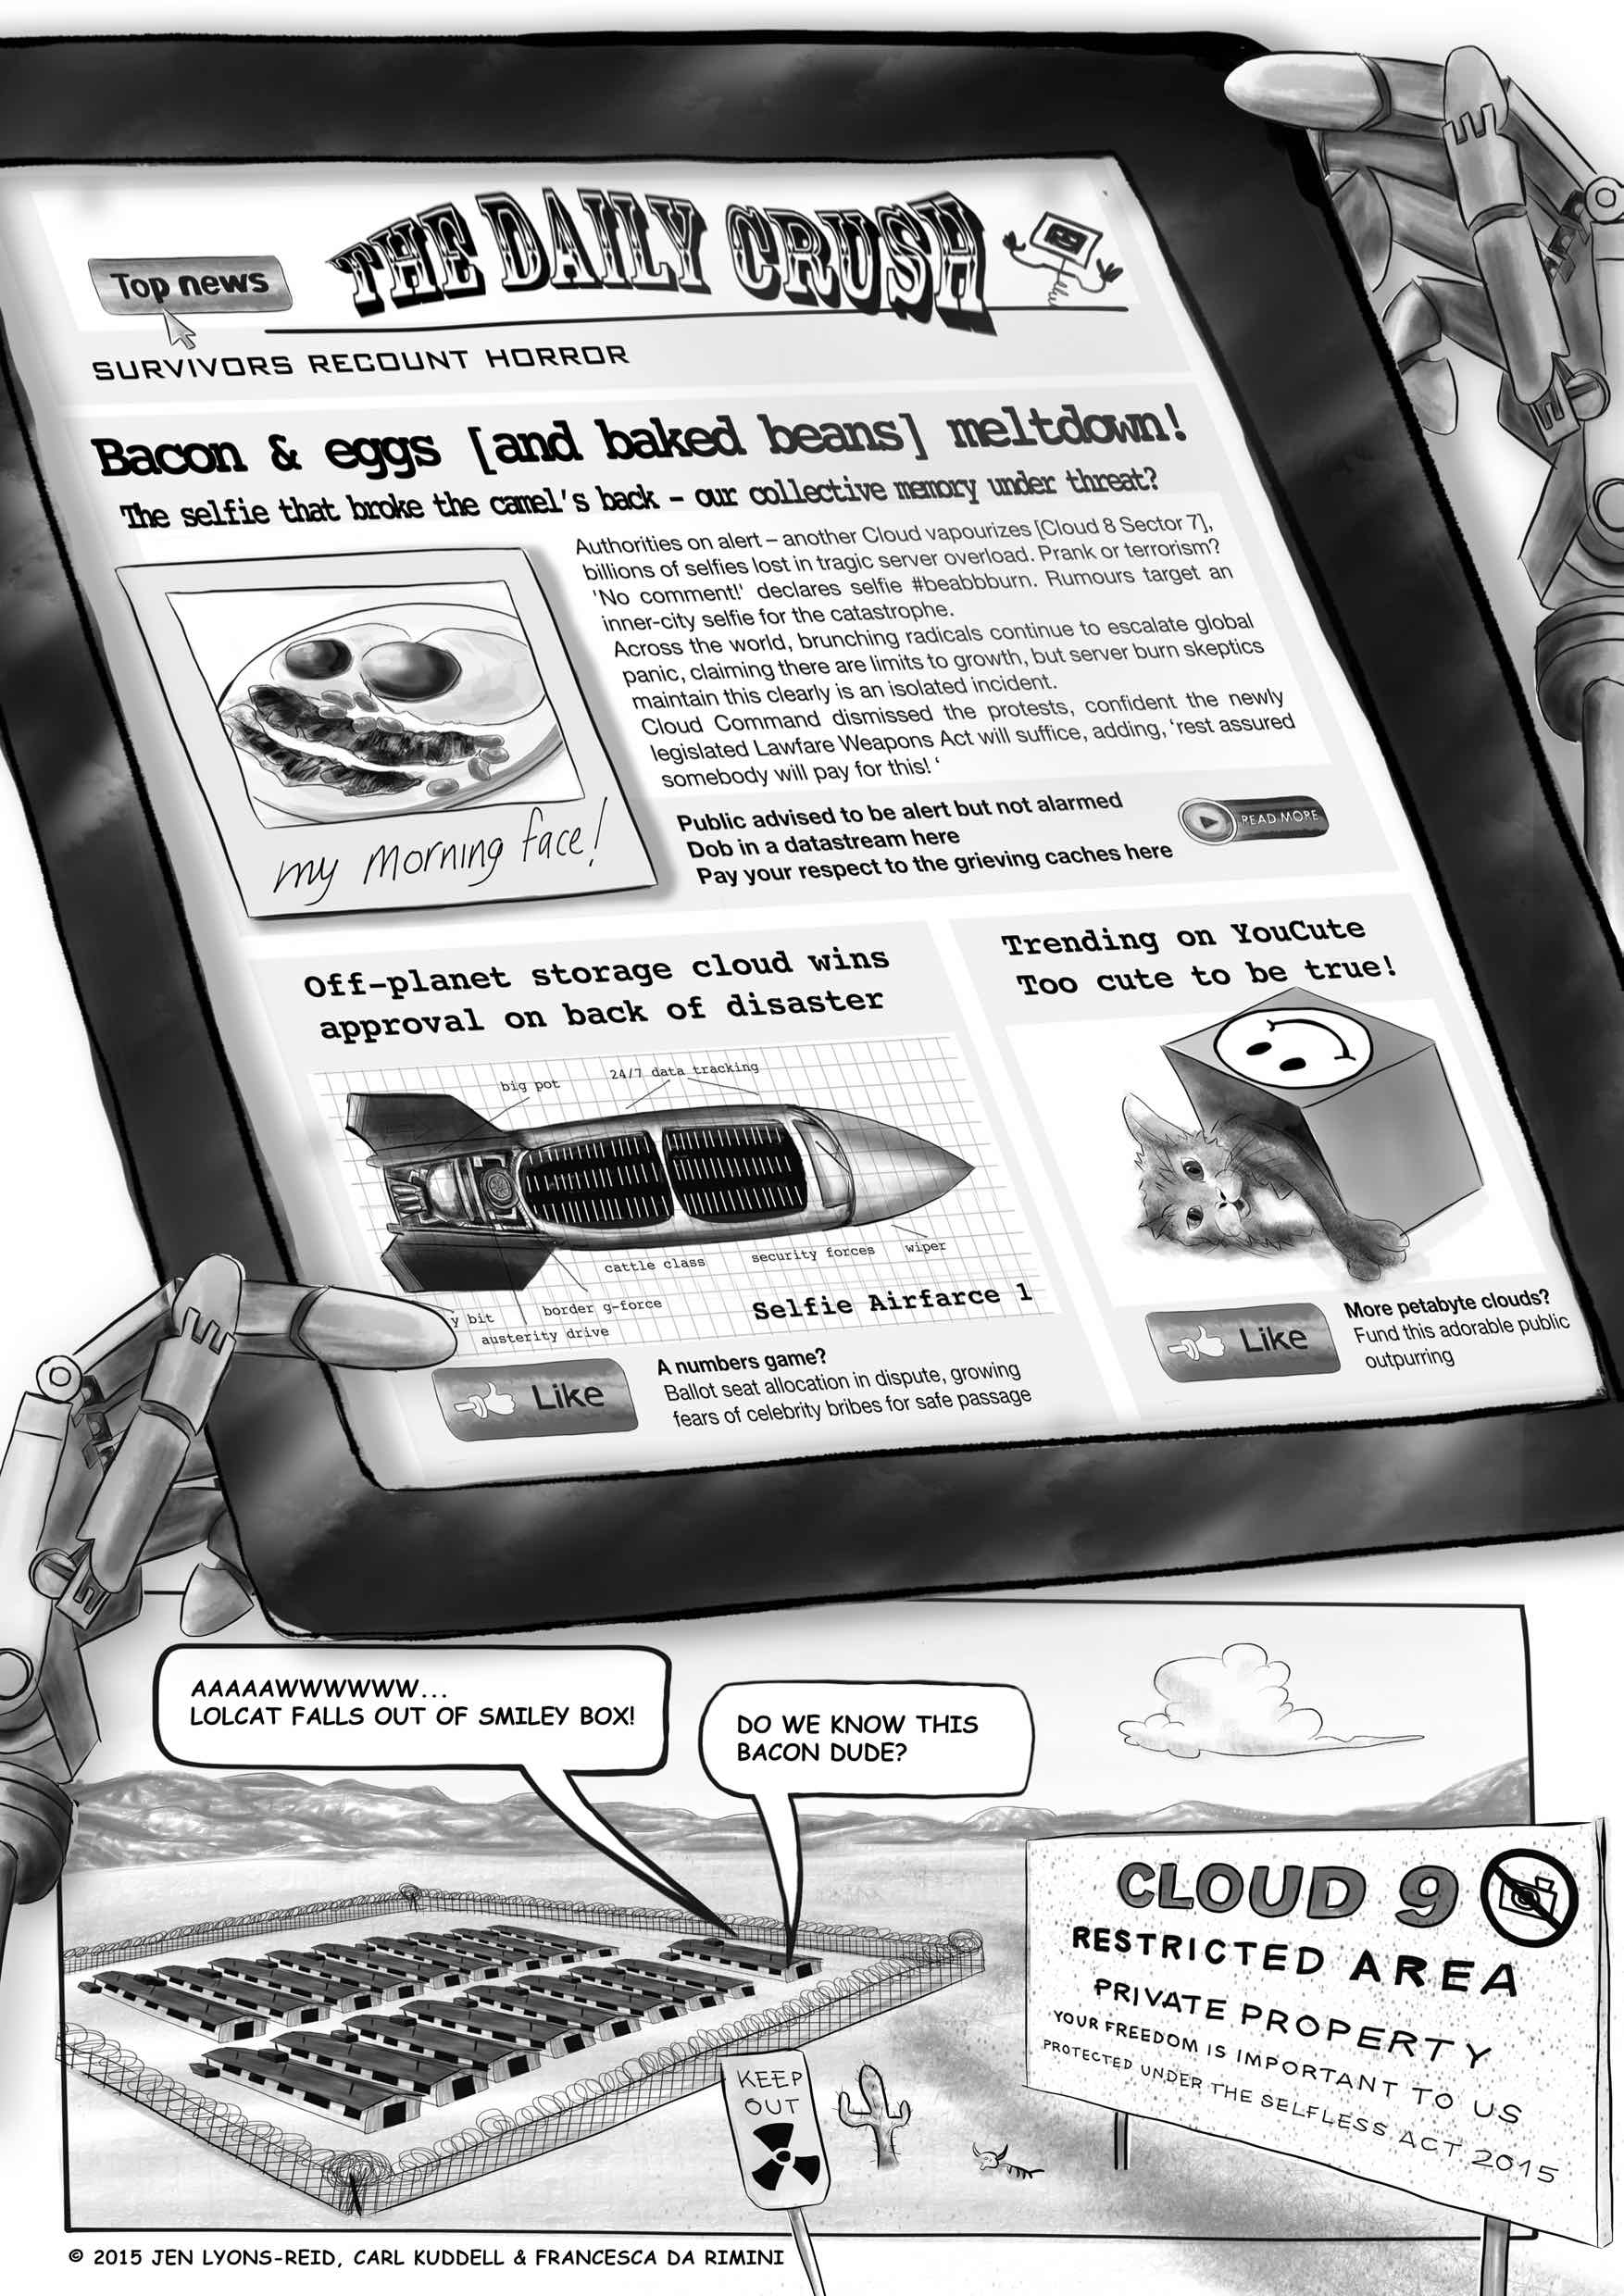 Escape_from_Cloud9_p1.jpg